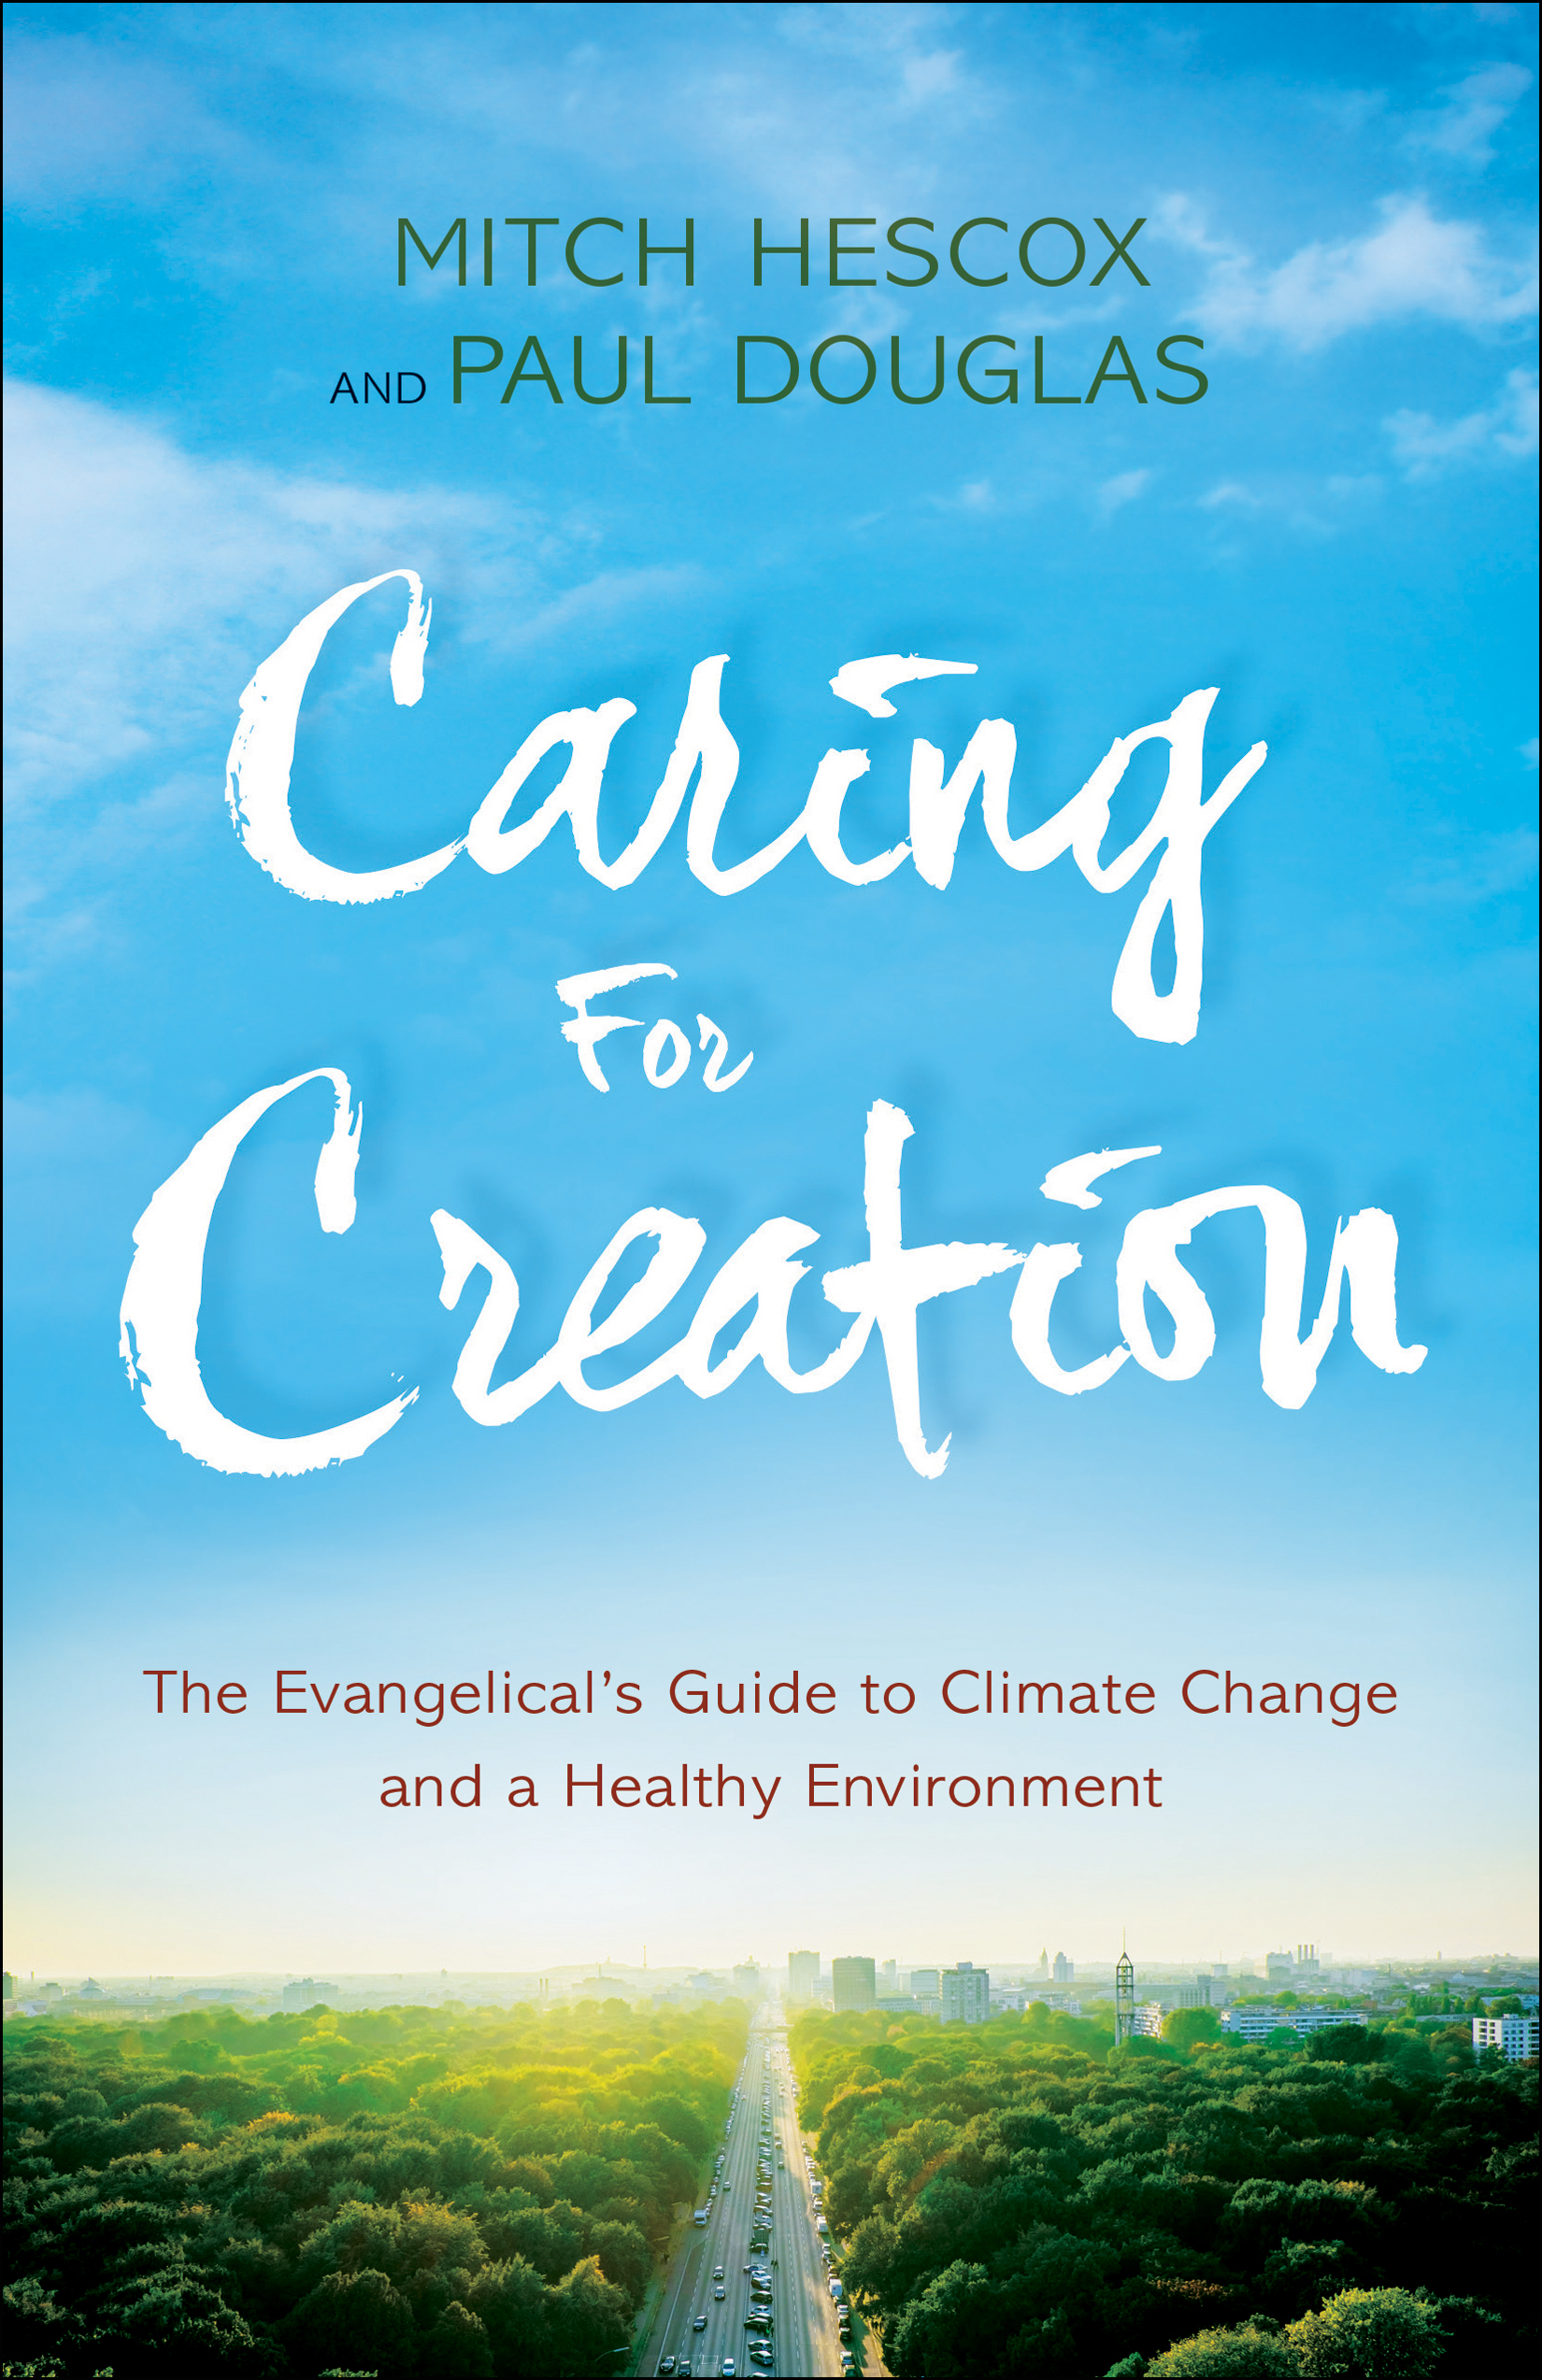 Caring for Creation: The Evangelical's Guide to Climate Change and a Healthy EnvironmentBy Paul Douglas, Mitch Hescox - By Paul Douglas, Mitch HescoxA top read for every Christian, written by C4 board member,Rev. Mitch Hescox& renown meteorologist Paul Douglas. This book cuts to the heart of believers' most pressing questions on climate change such as